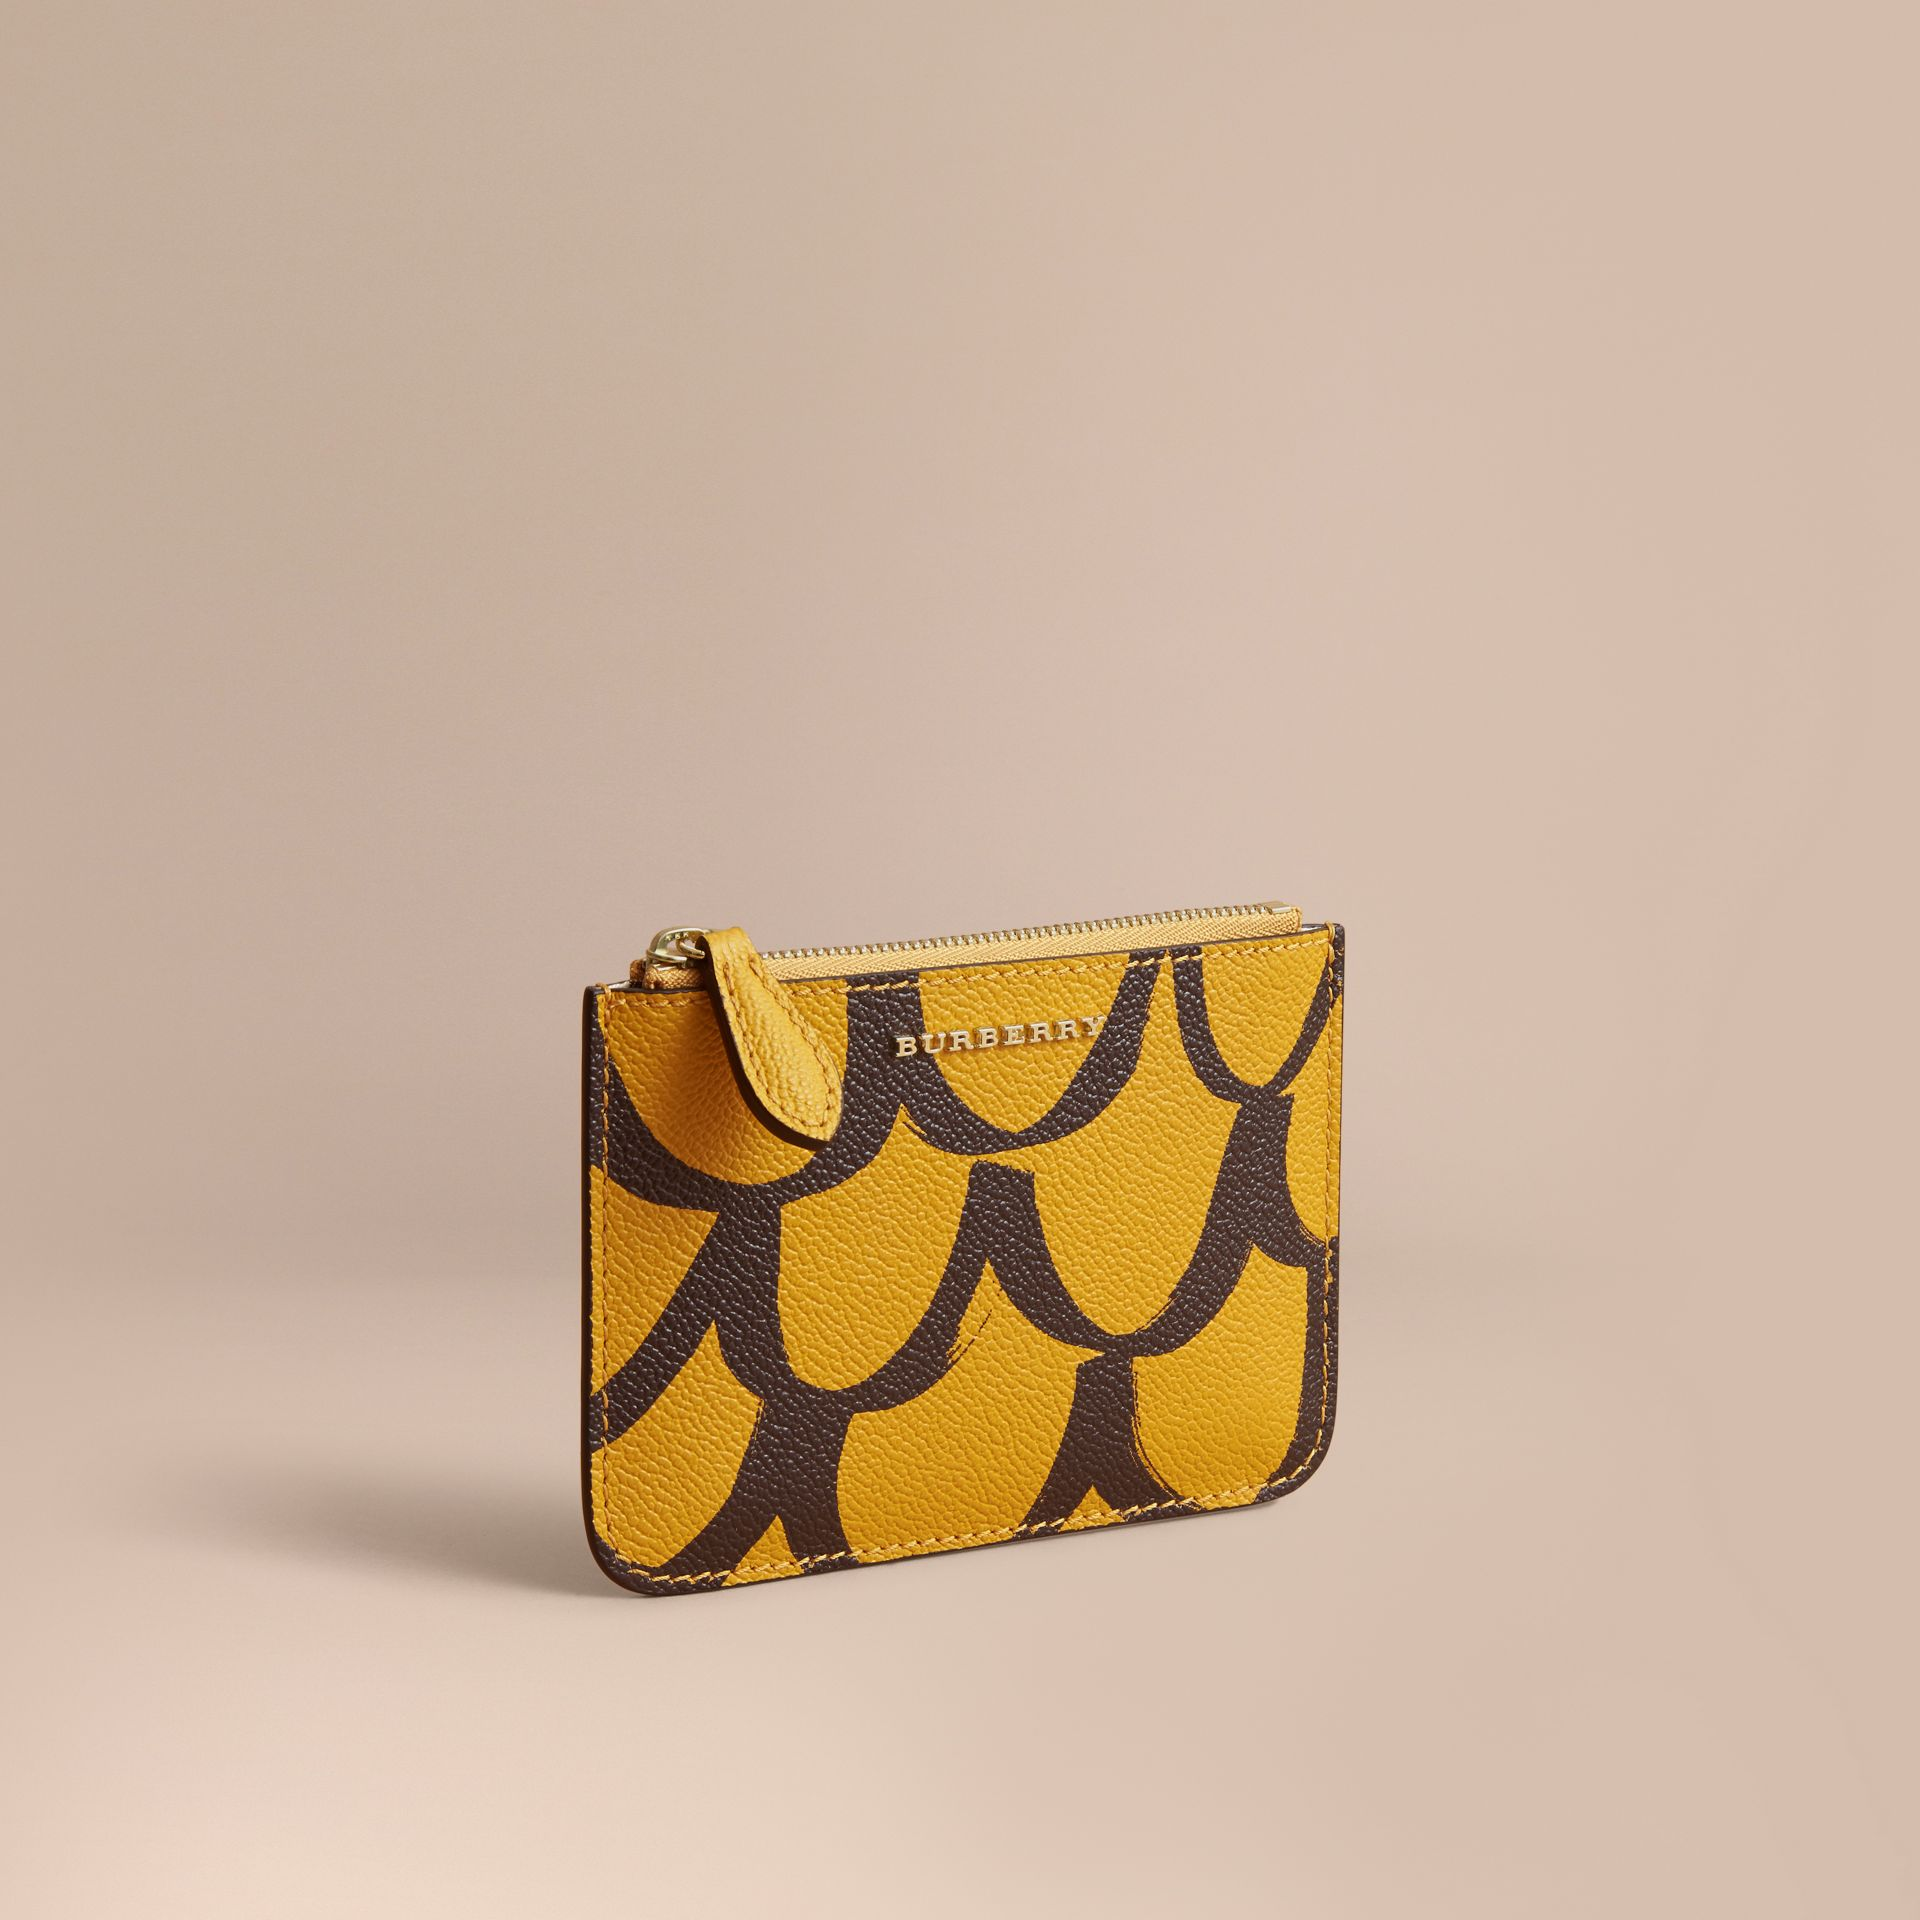 Trompe L'oeil Print Leather Pouch in Bright Straw - Women | Burberry - gallery image 1